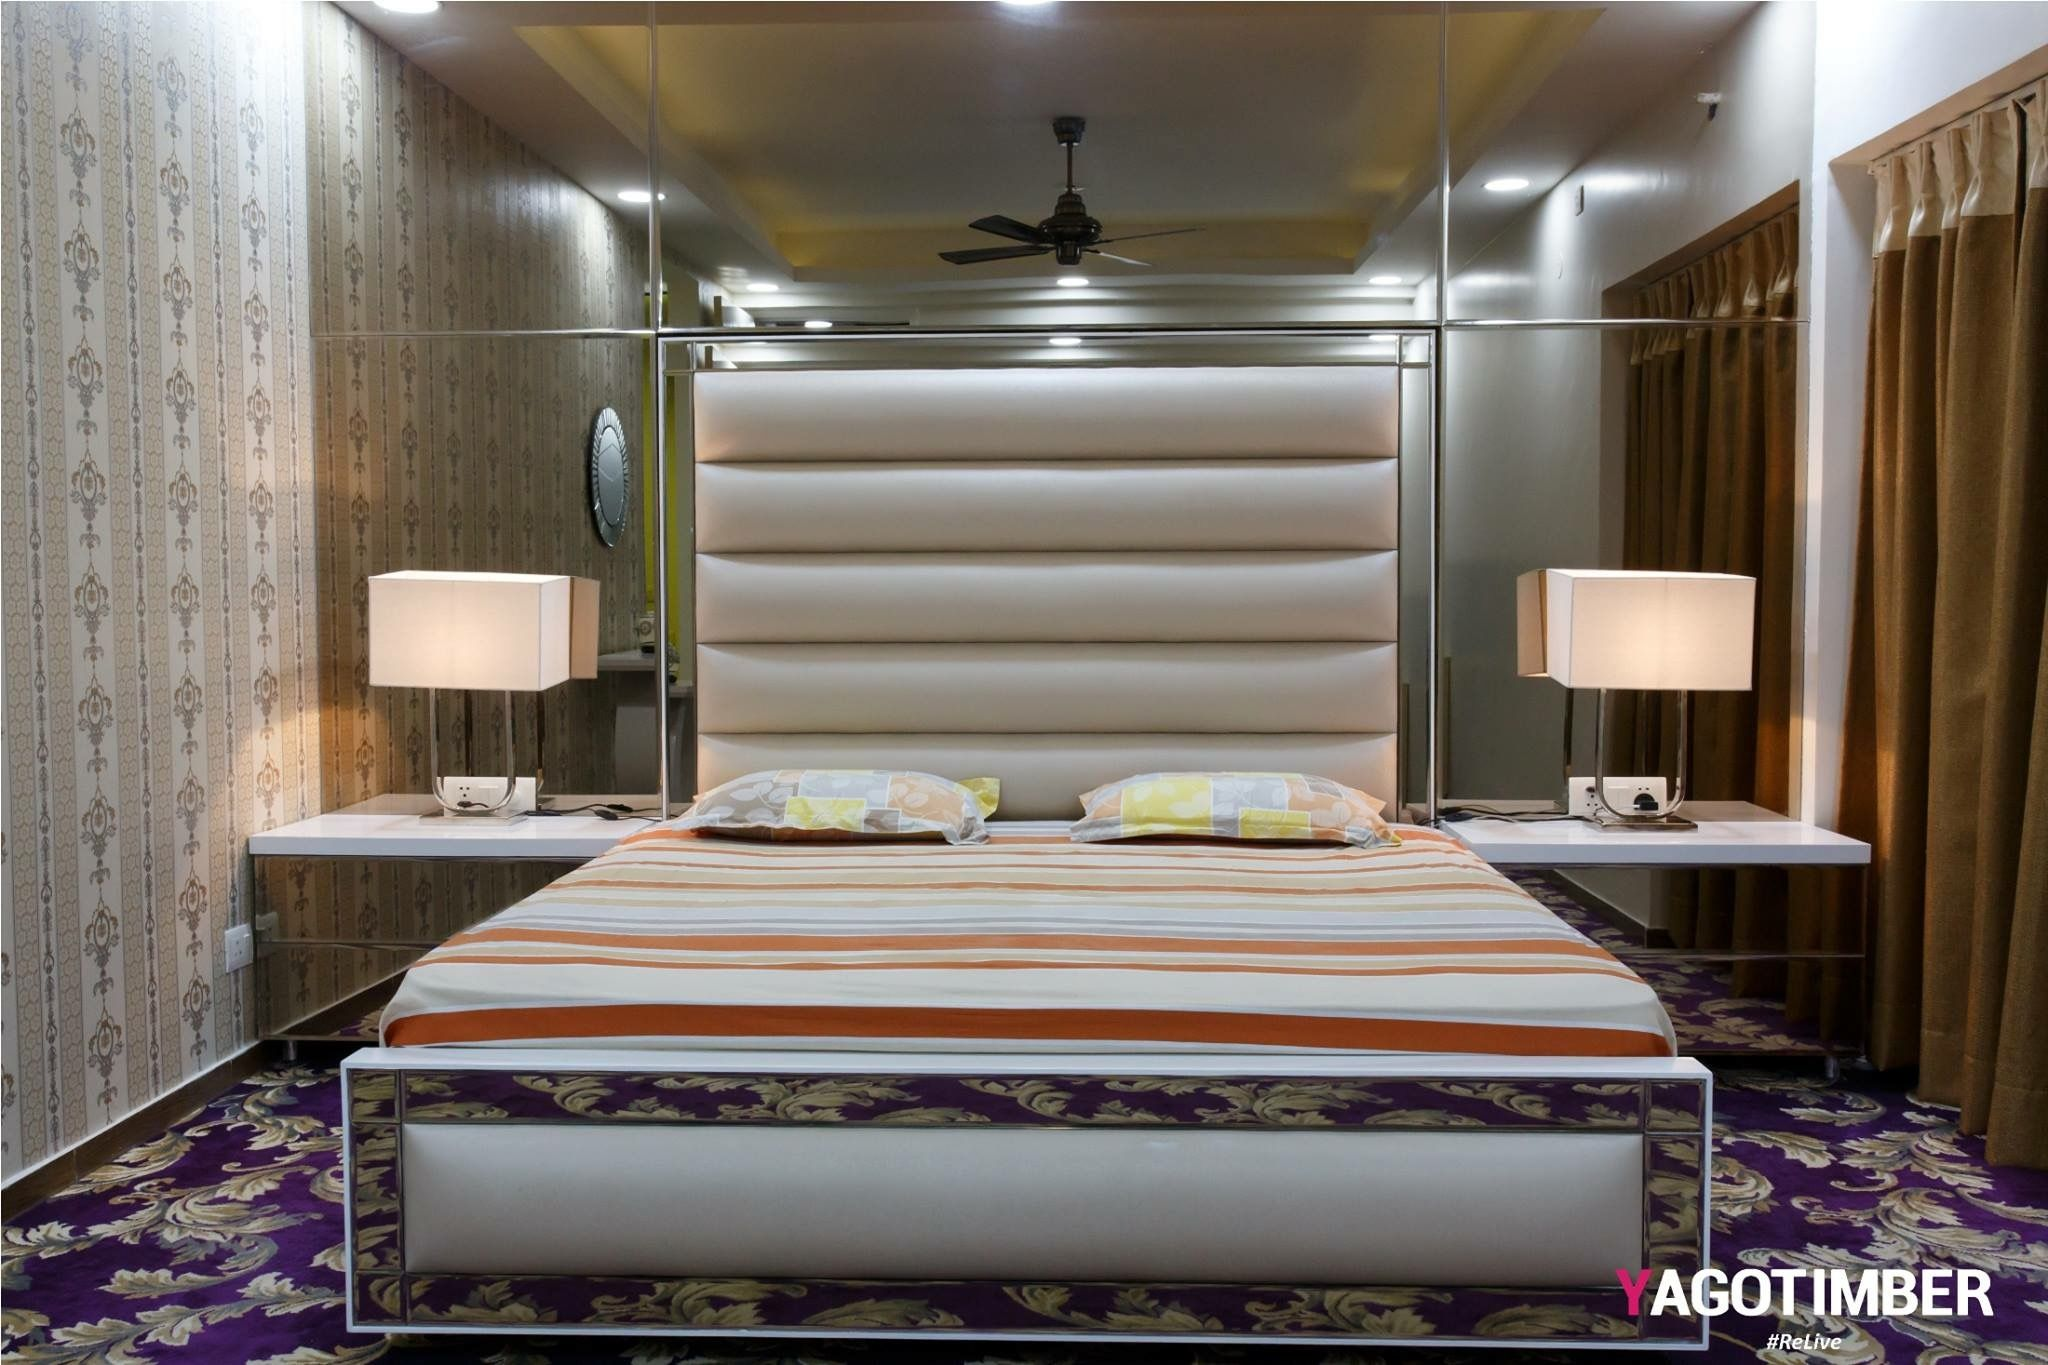 Pin by ID Mukul Manglik on bedrooms | Pinterest | Bedrooms, Bed ...